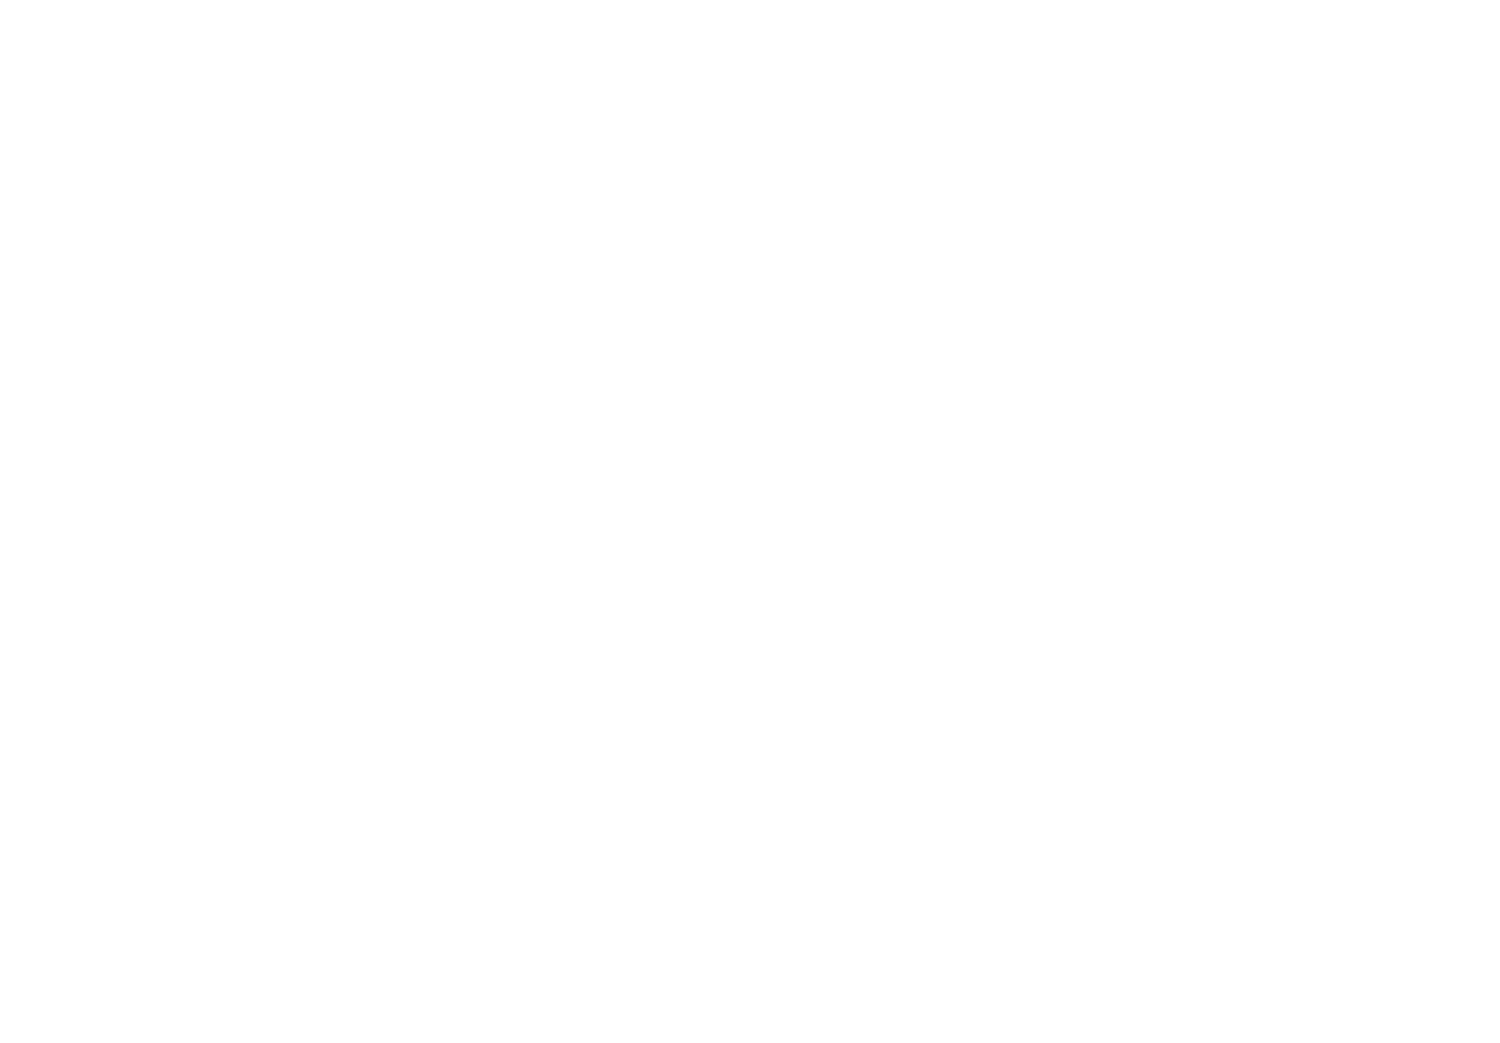 The Seahorse Cafe